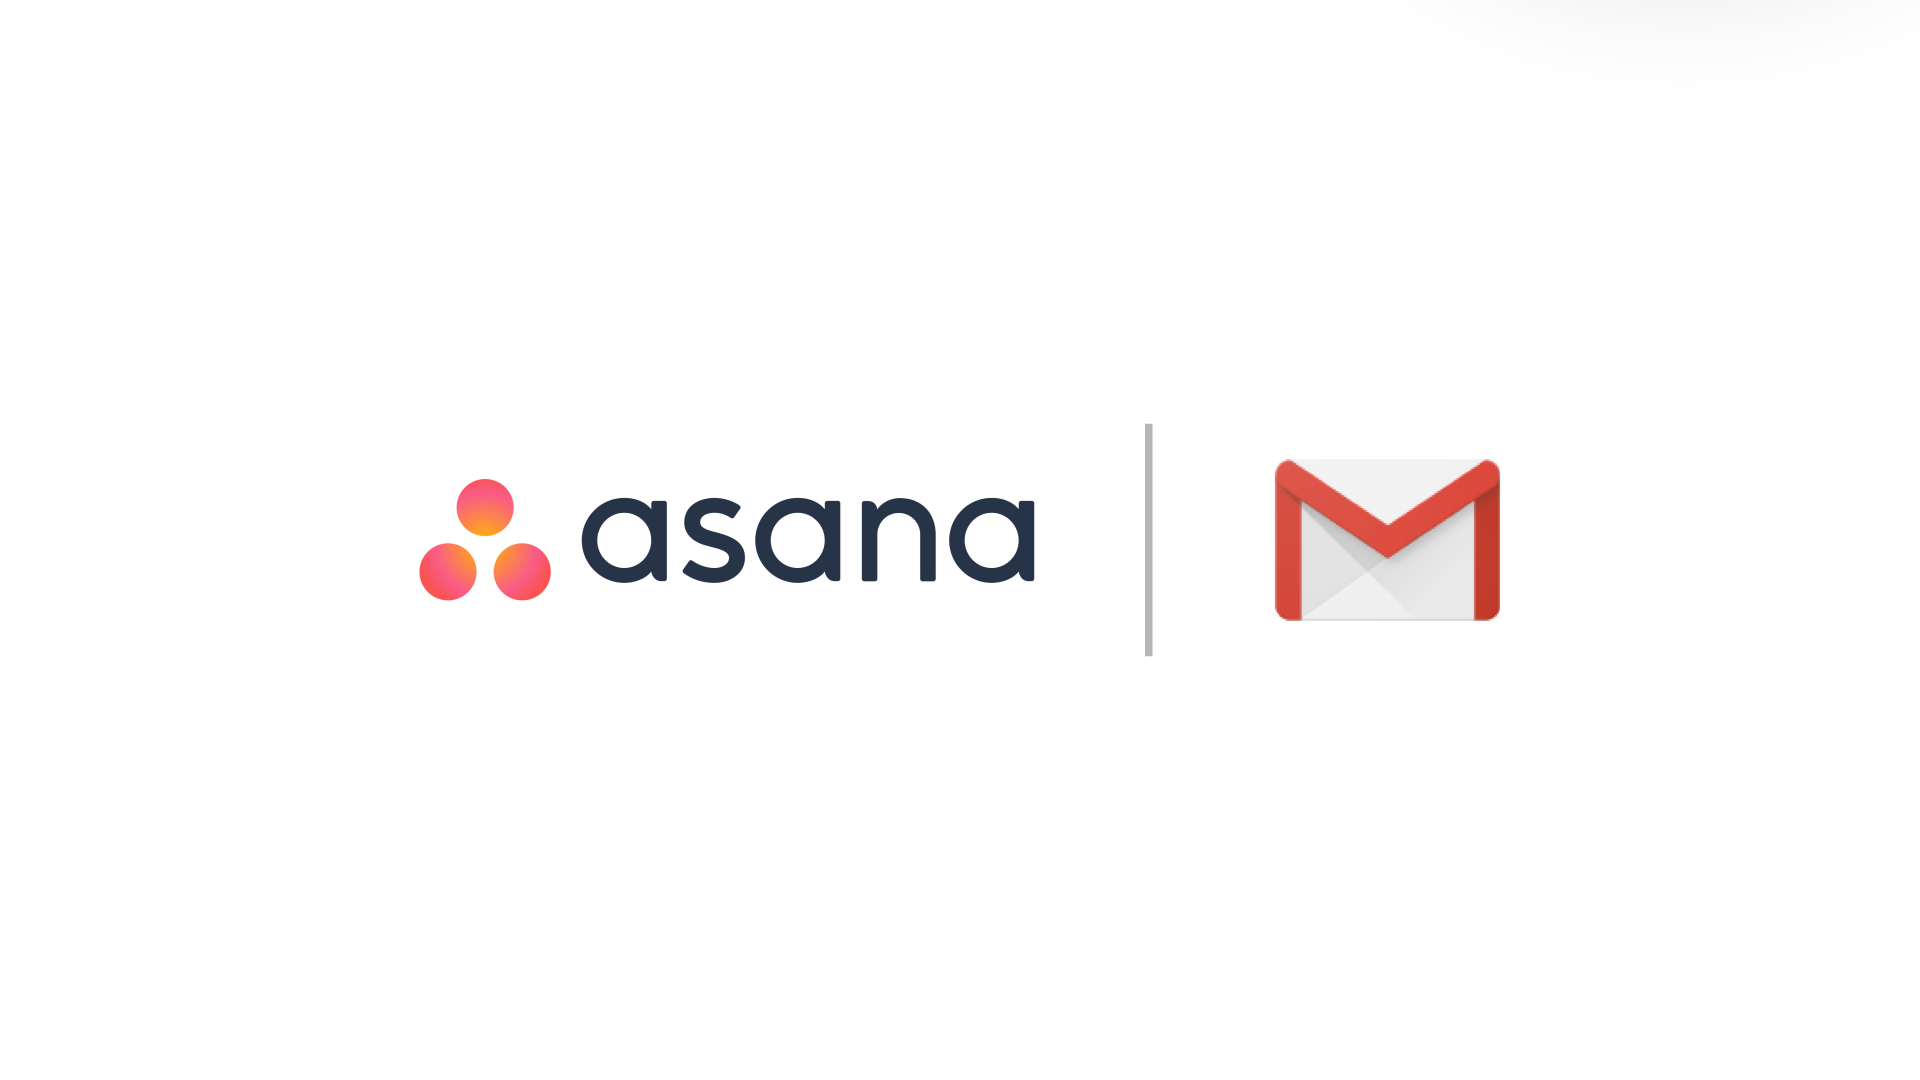 Turn Emails into Tasks with the New Gmail Asana Integration.